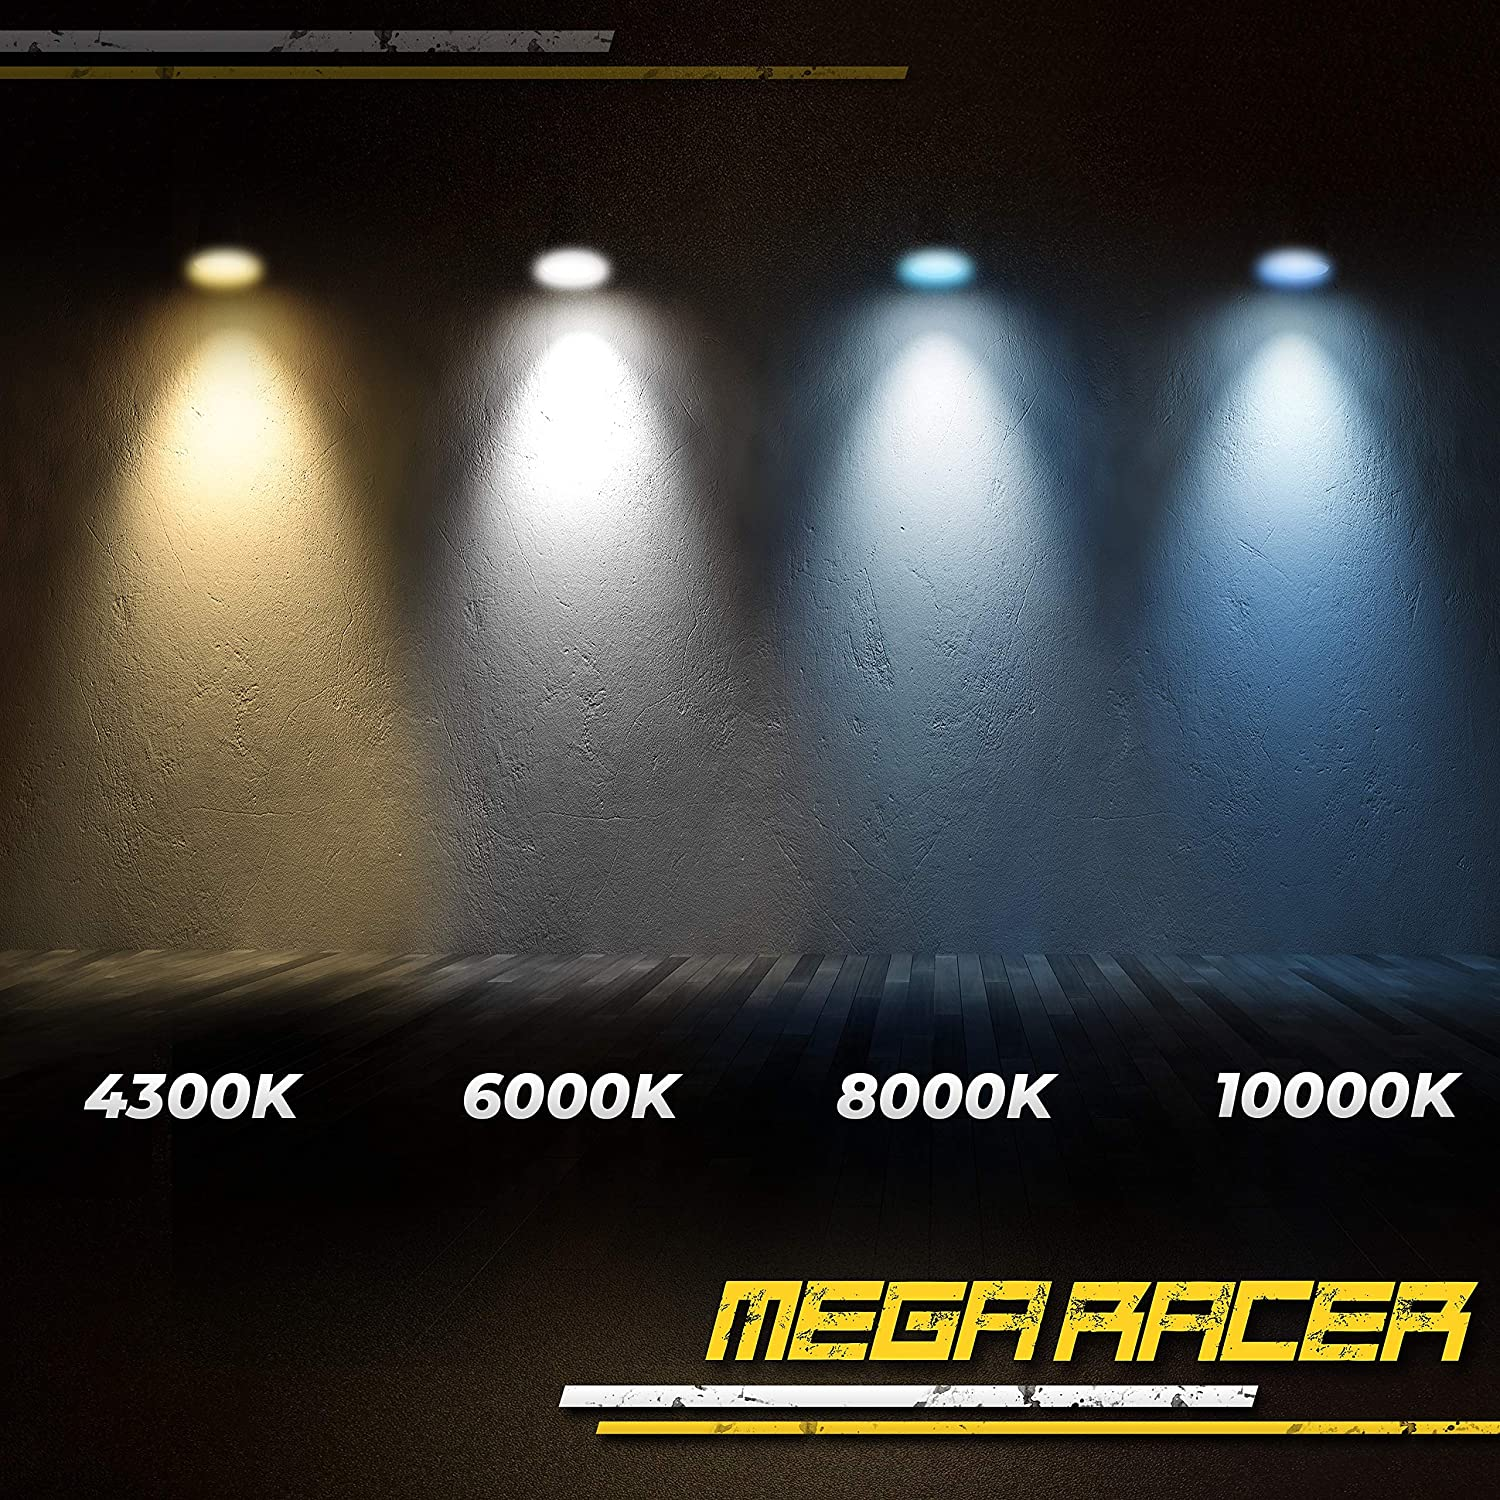 Mega Racer D3S HID Bulb 6000K D3R D3C Bright White 12V Metal Stents Xenon HID Headlights Replacement Headlight Bulb Xenon Light Bulbs 42403 66340 HID Lights D3S Headlight Bulb HID Light Bulbs